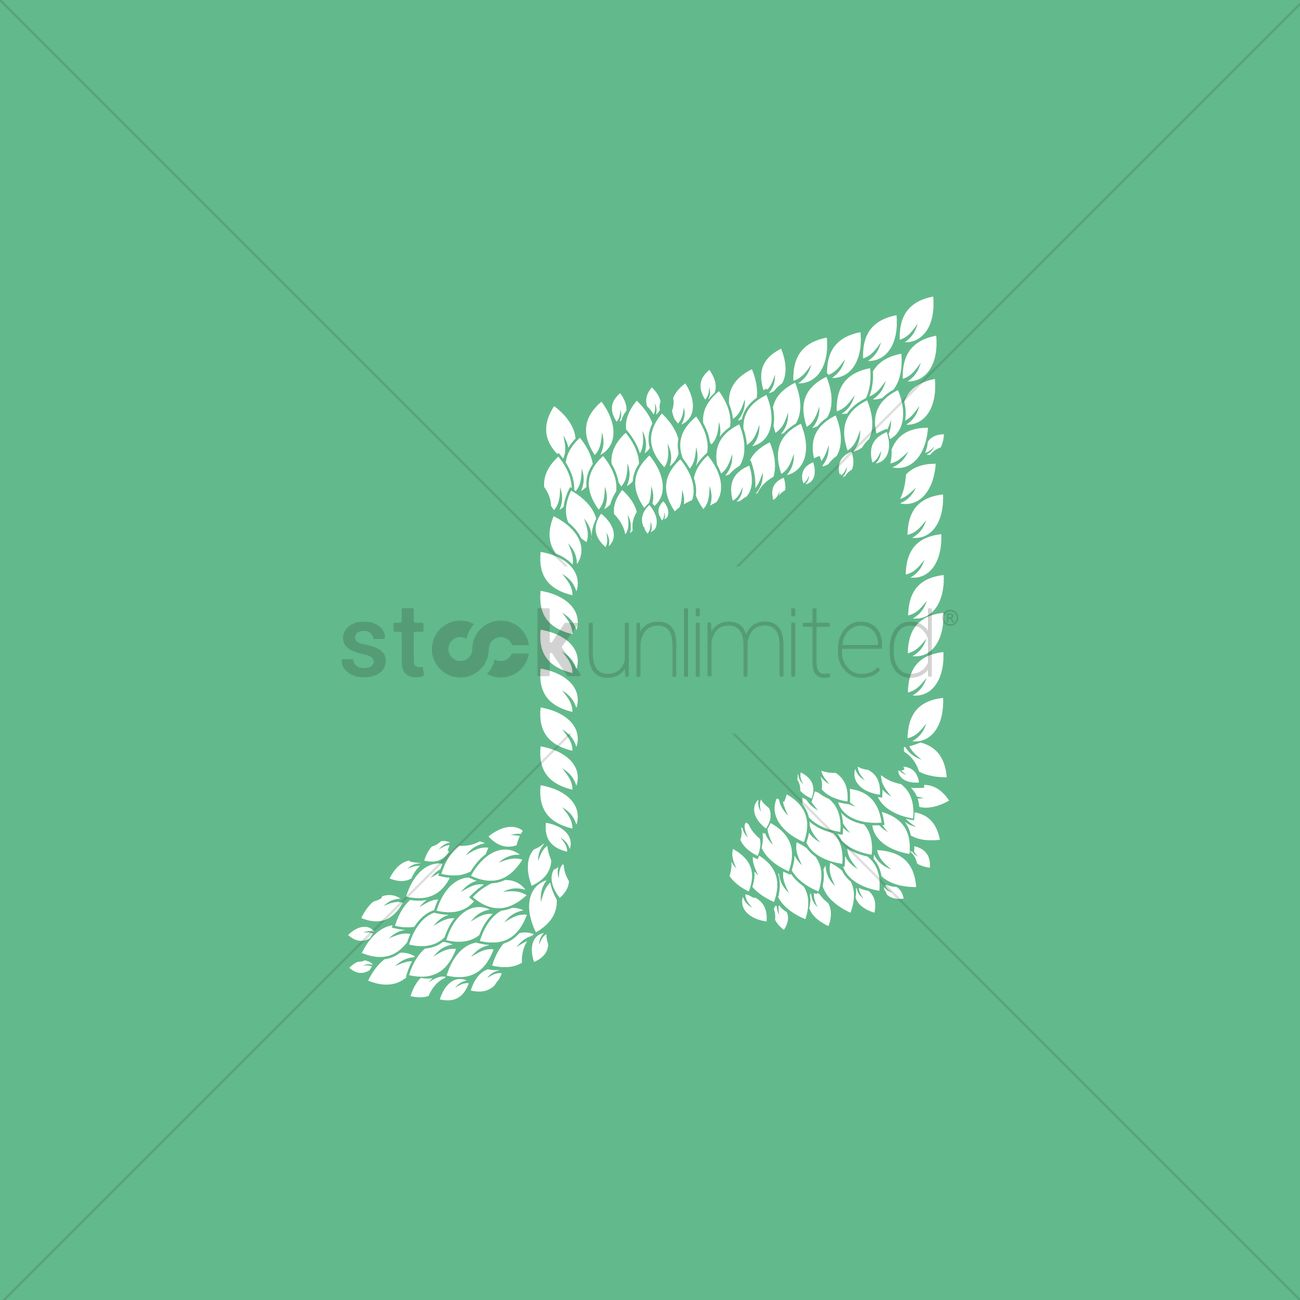 Free music symbol with leaves vector image 1261202 stockunlimited free music symbol with leaves vector graphic biocorpaavc Images